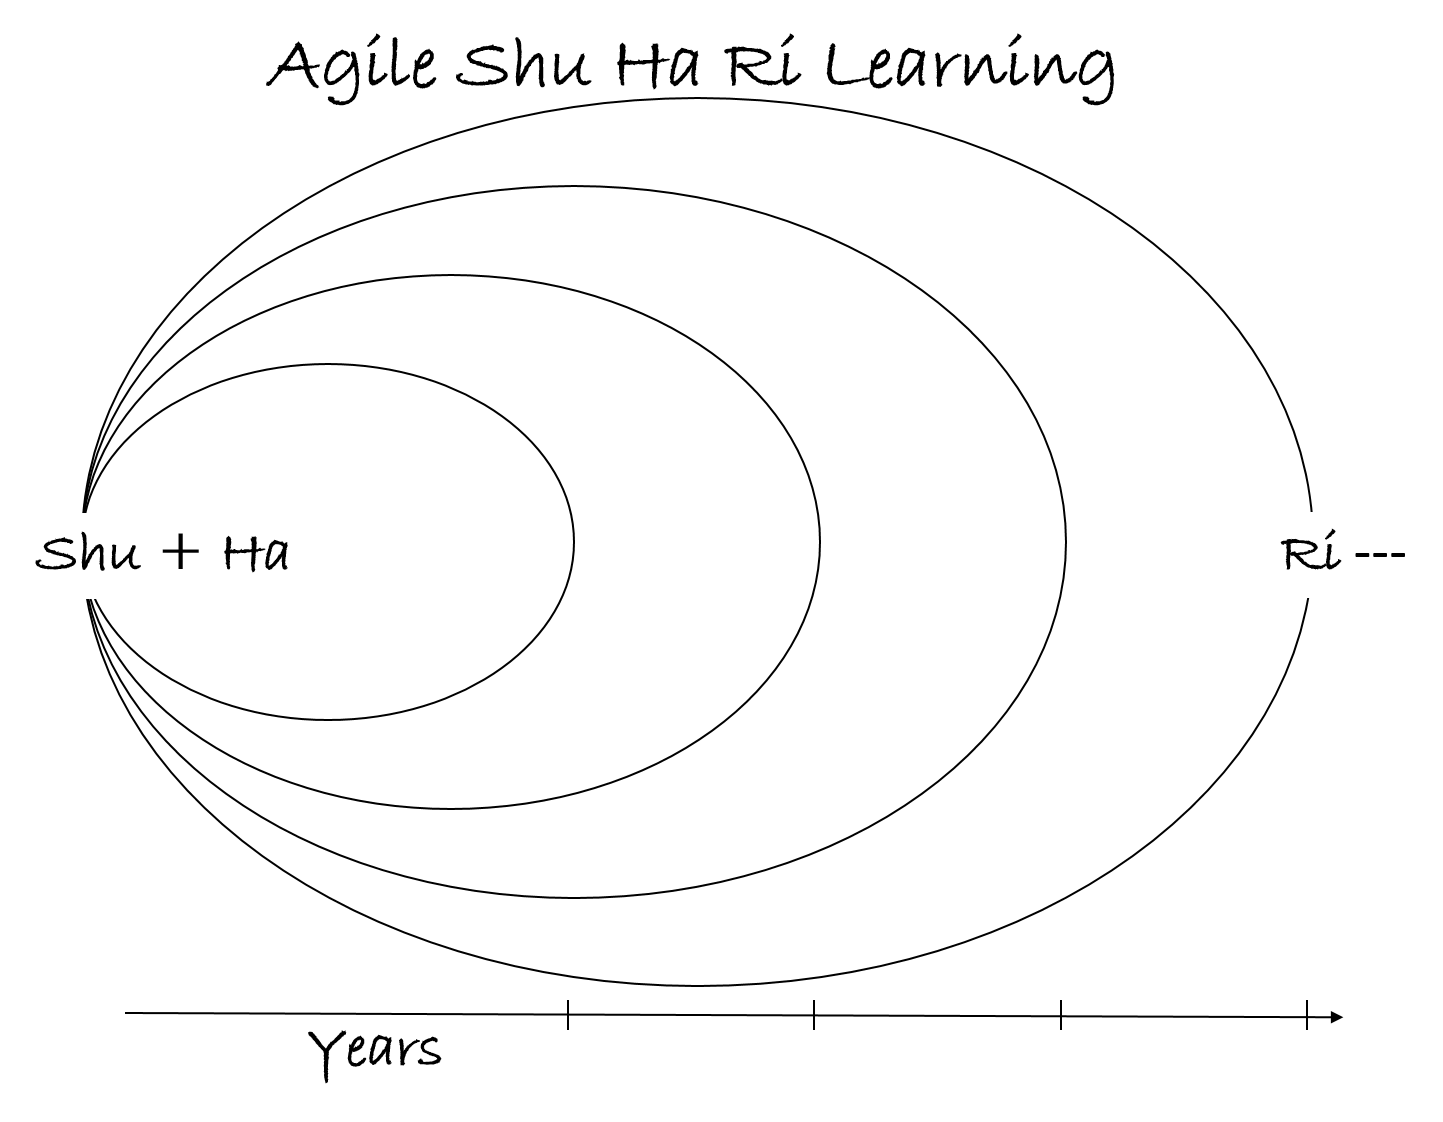 Agile Shu Ha Ri Learning